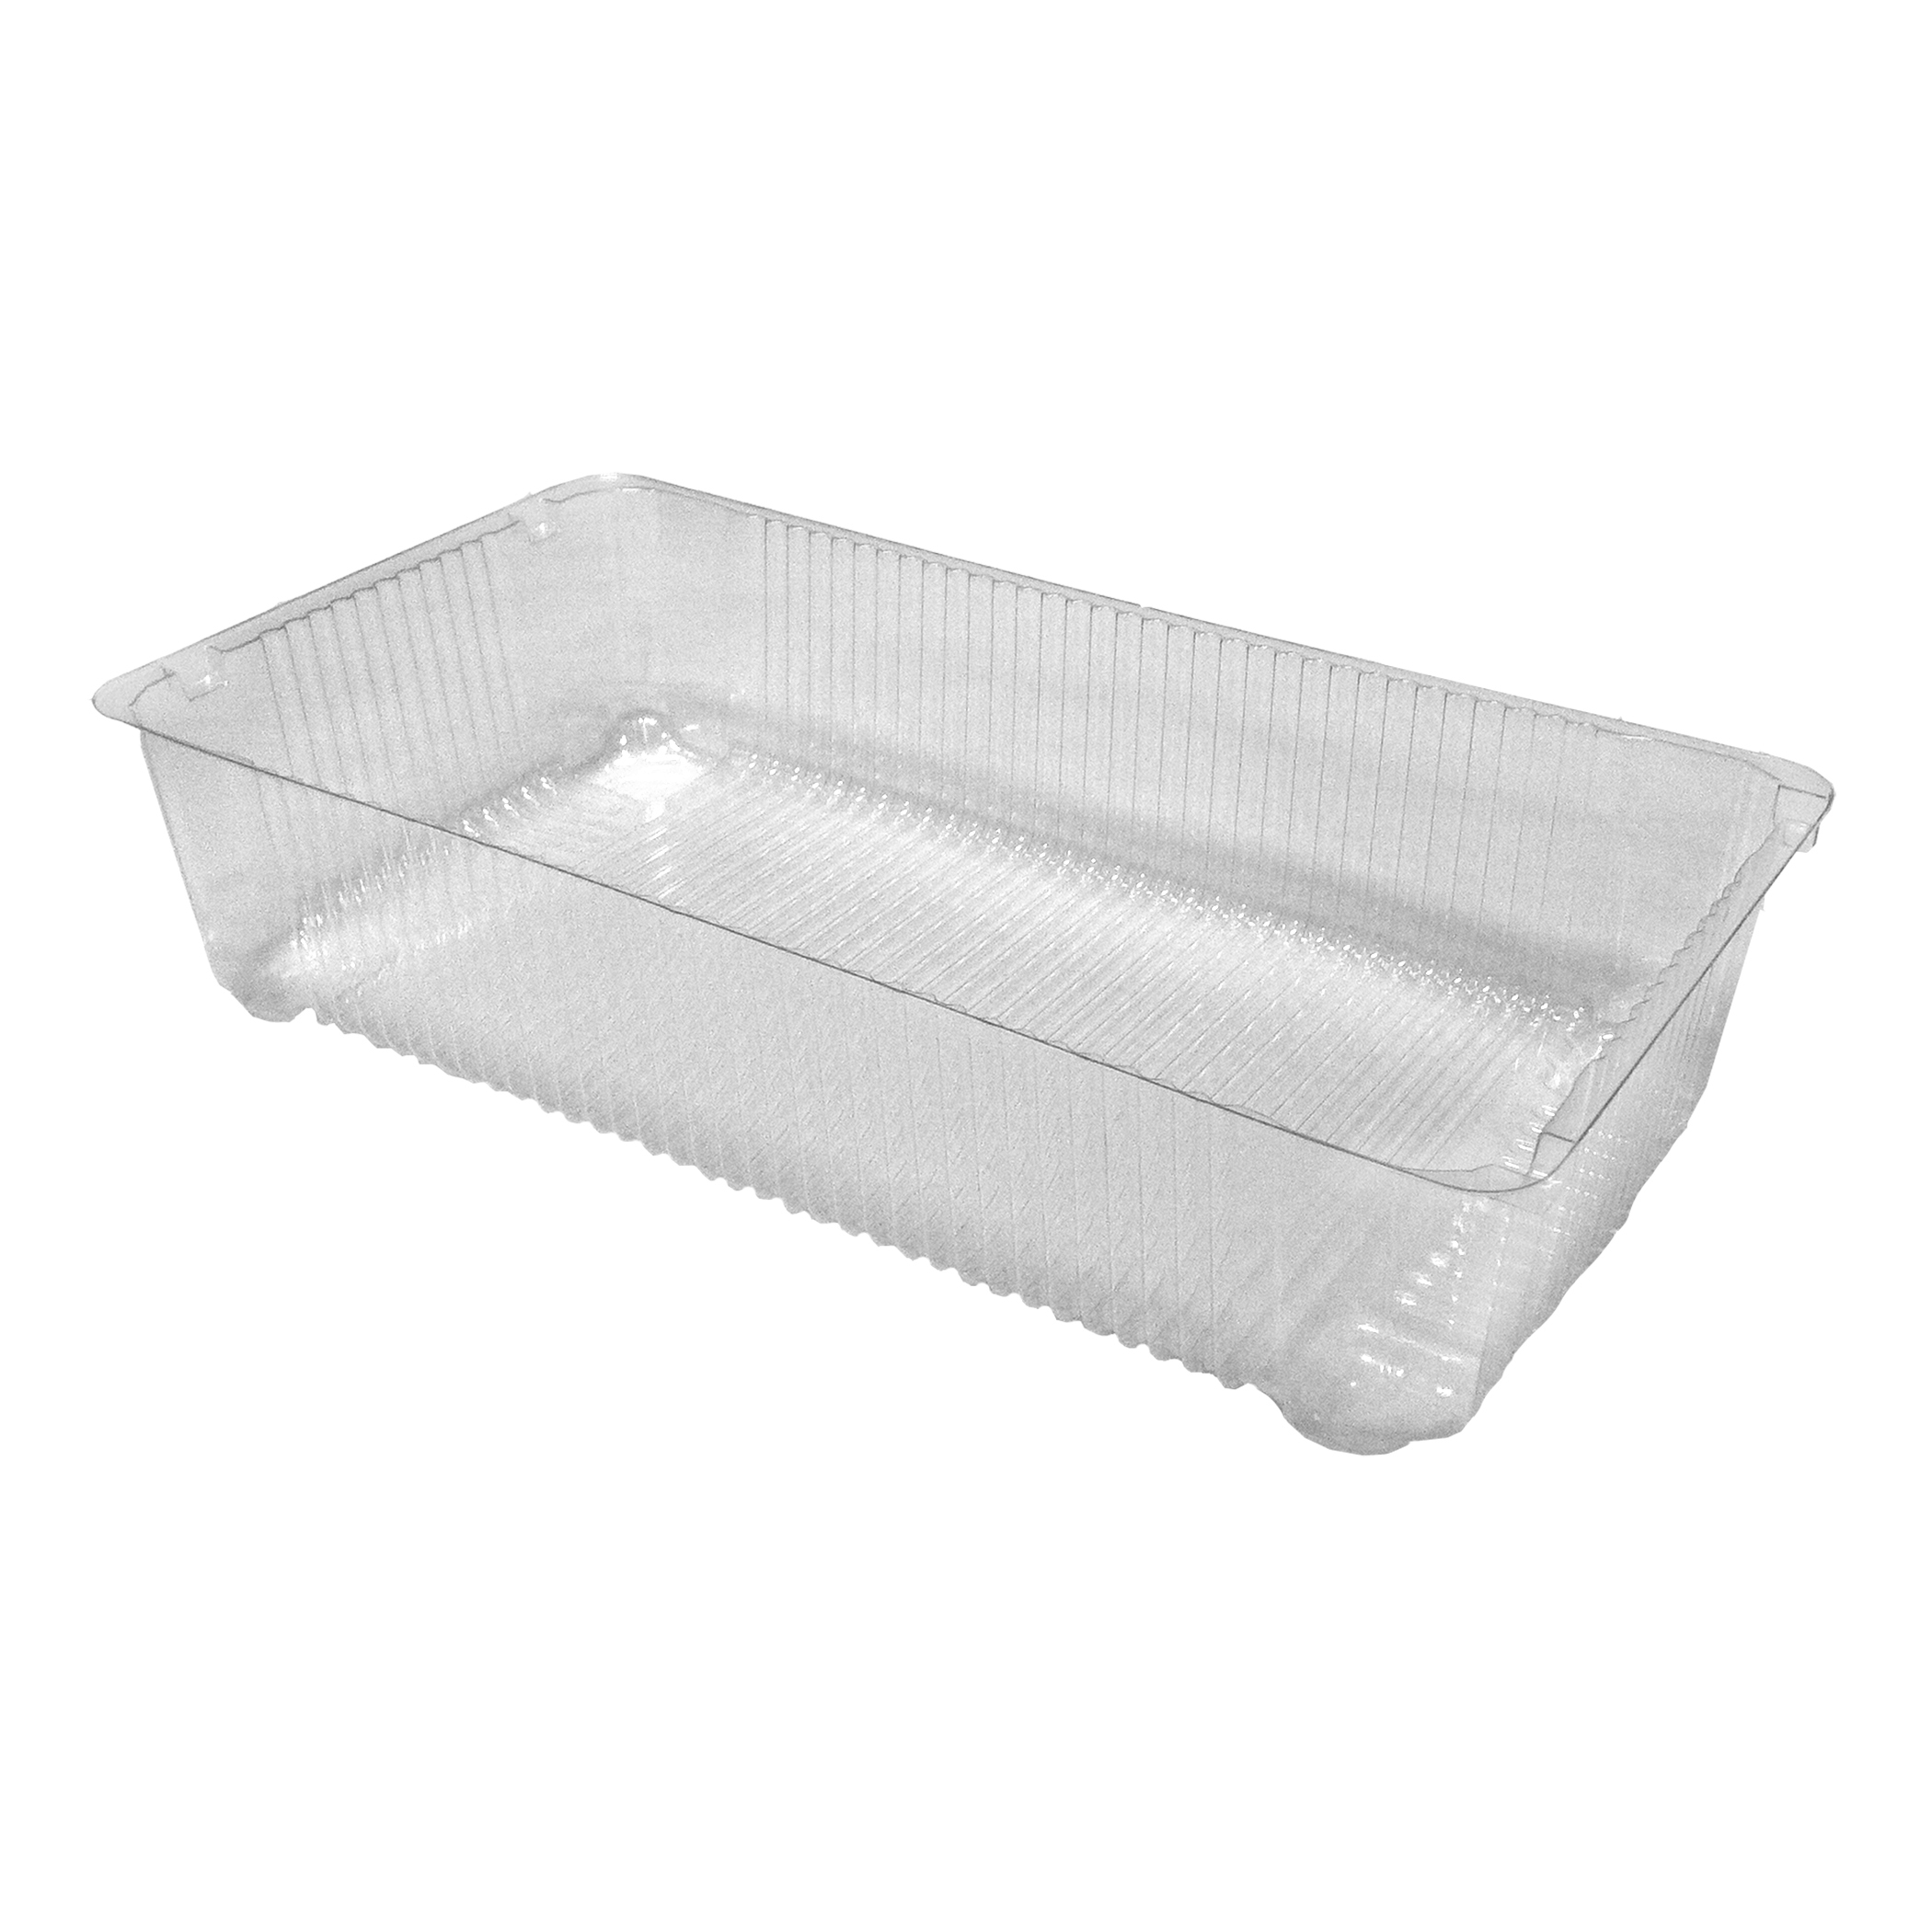 M CRACKER TRAY 1,080/CS